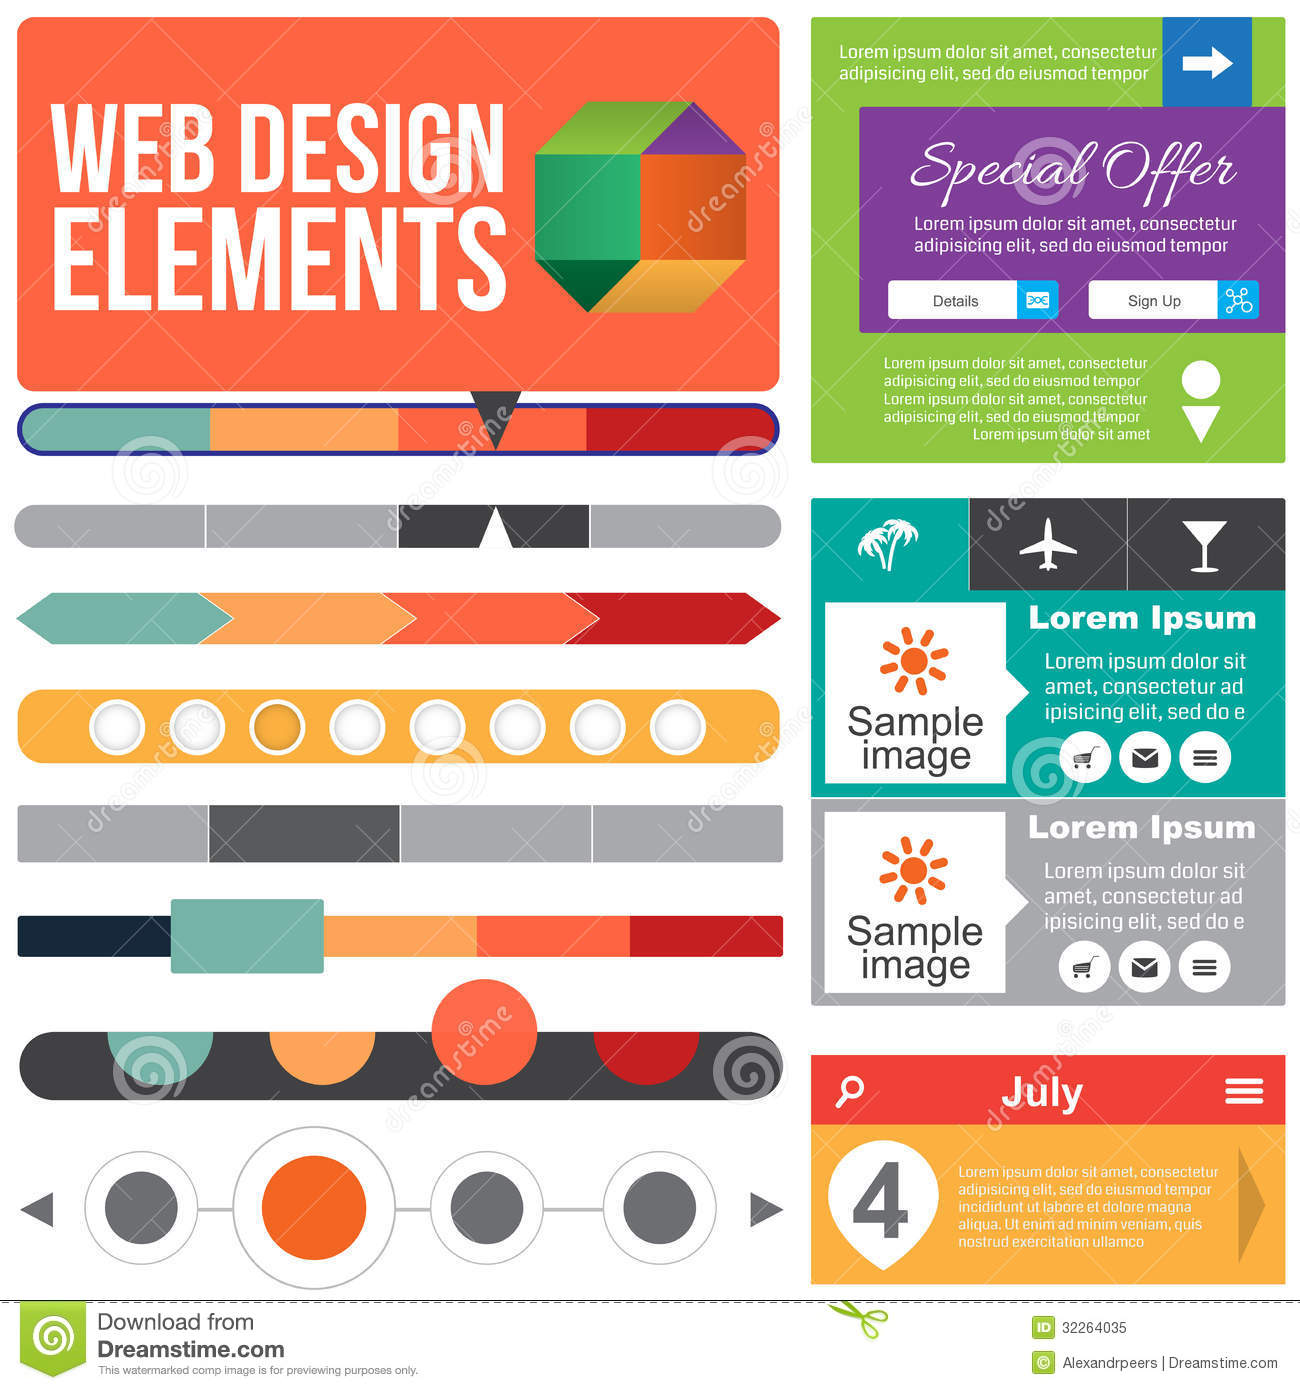 Elements For Design : Flat web design elements royalty free stock photo image